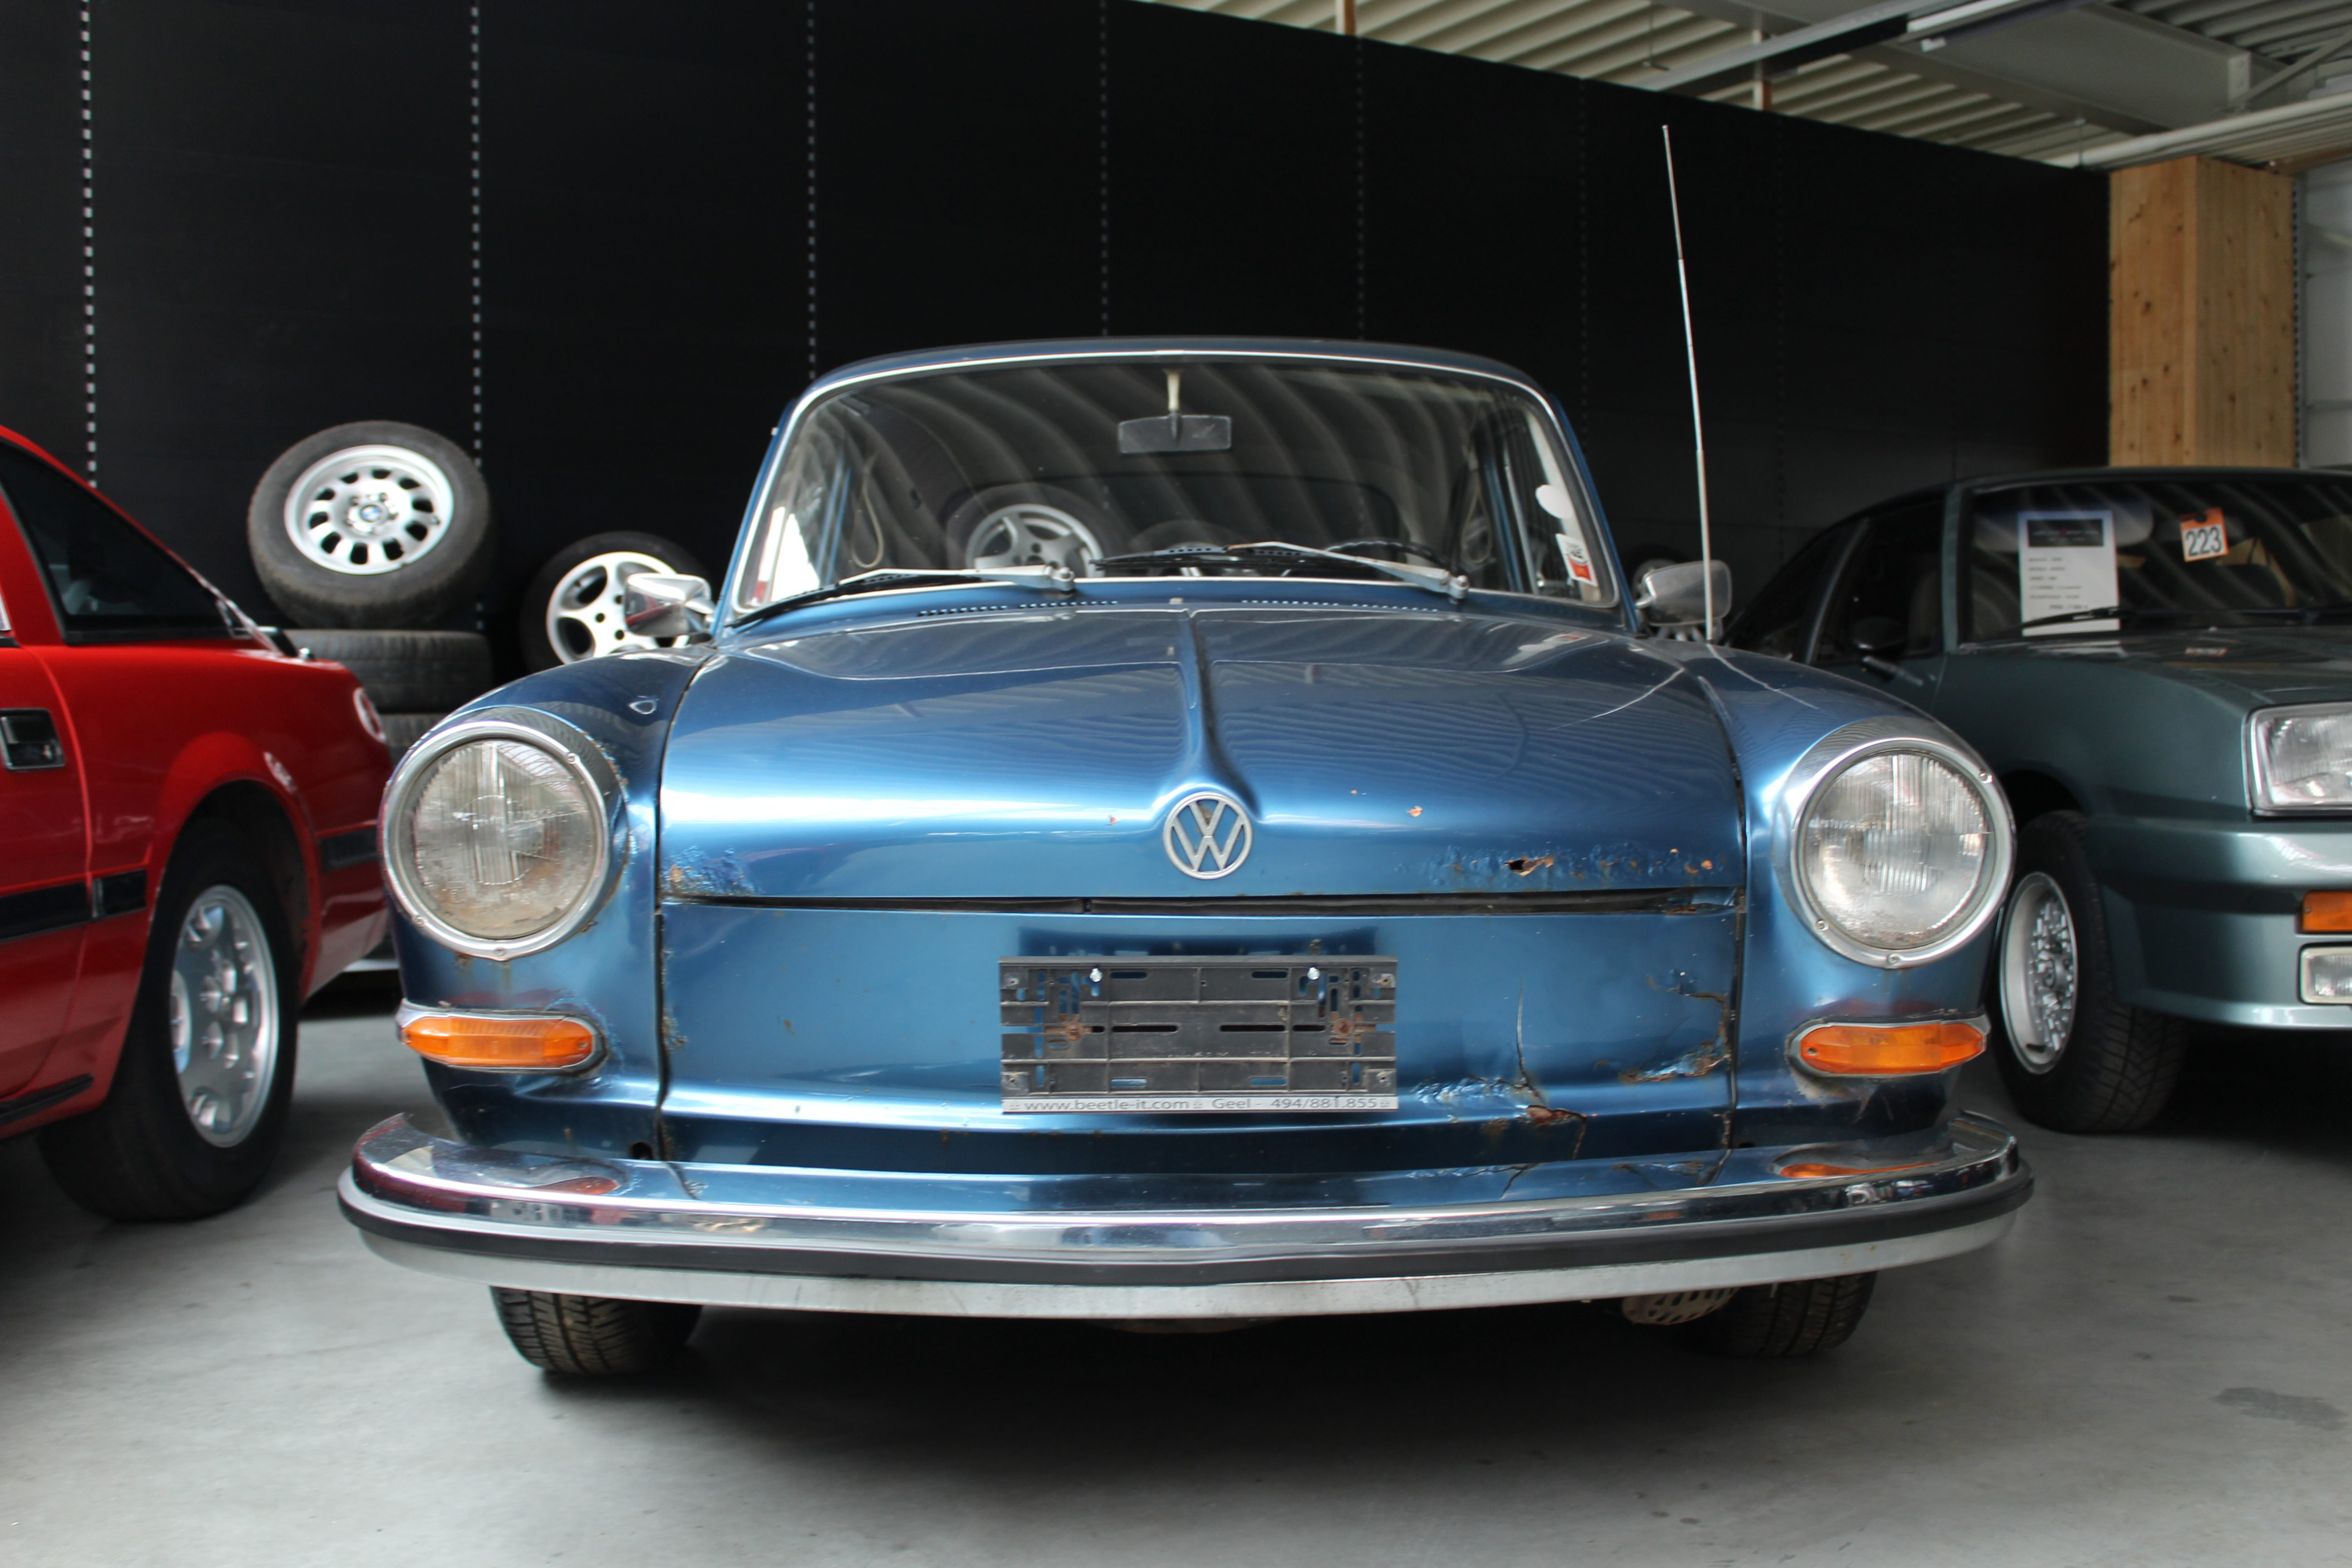 Volkswagen Type 3 Fastback 1973 – Auto S Edition